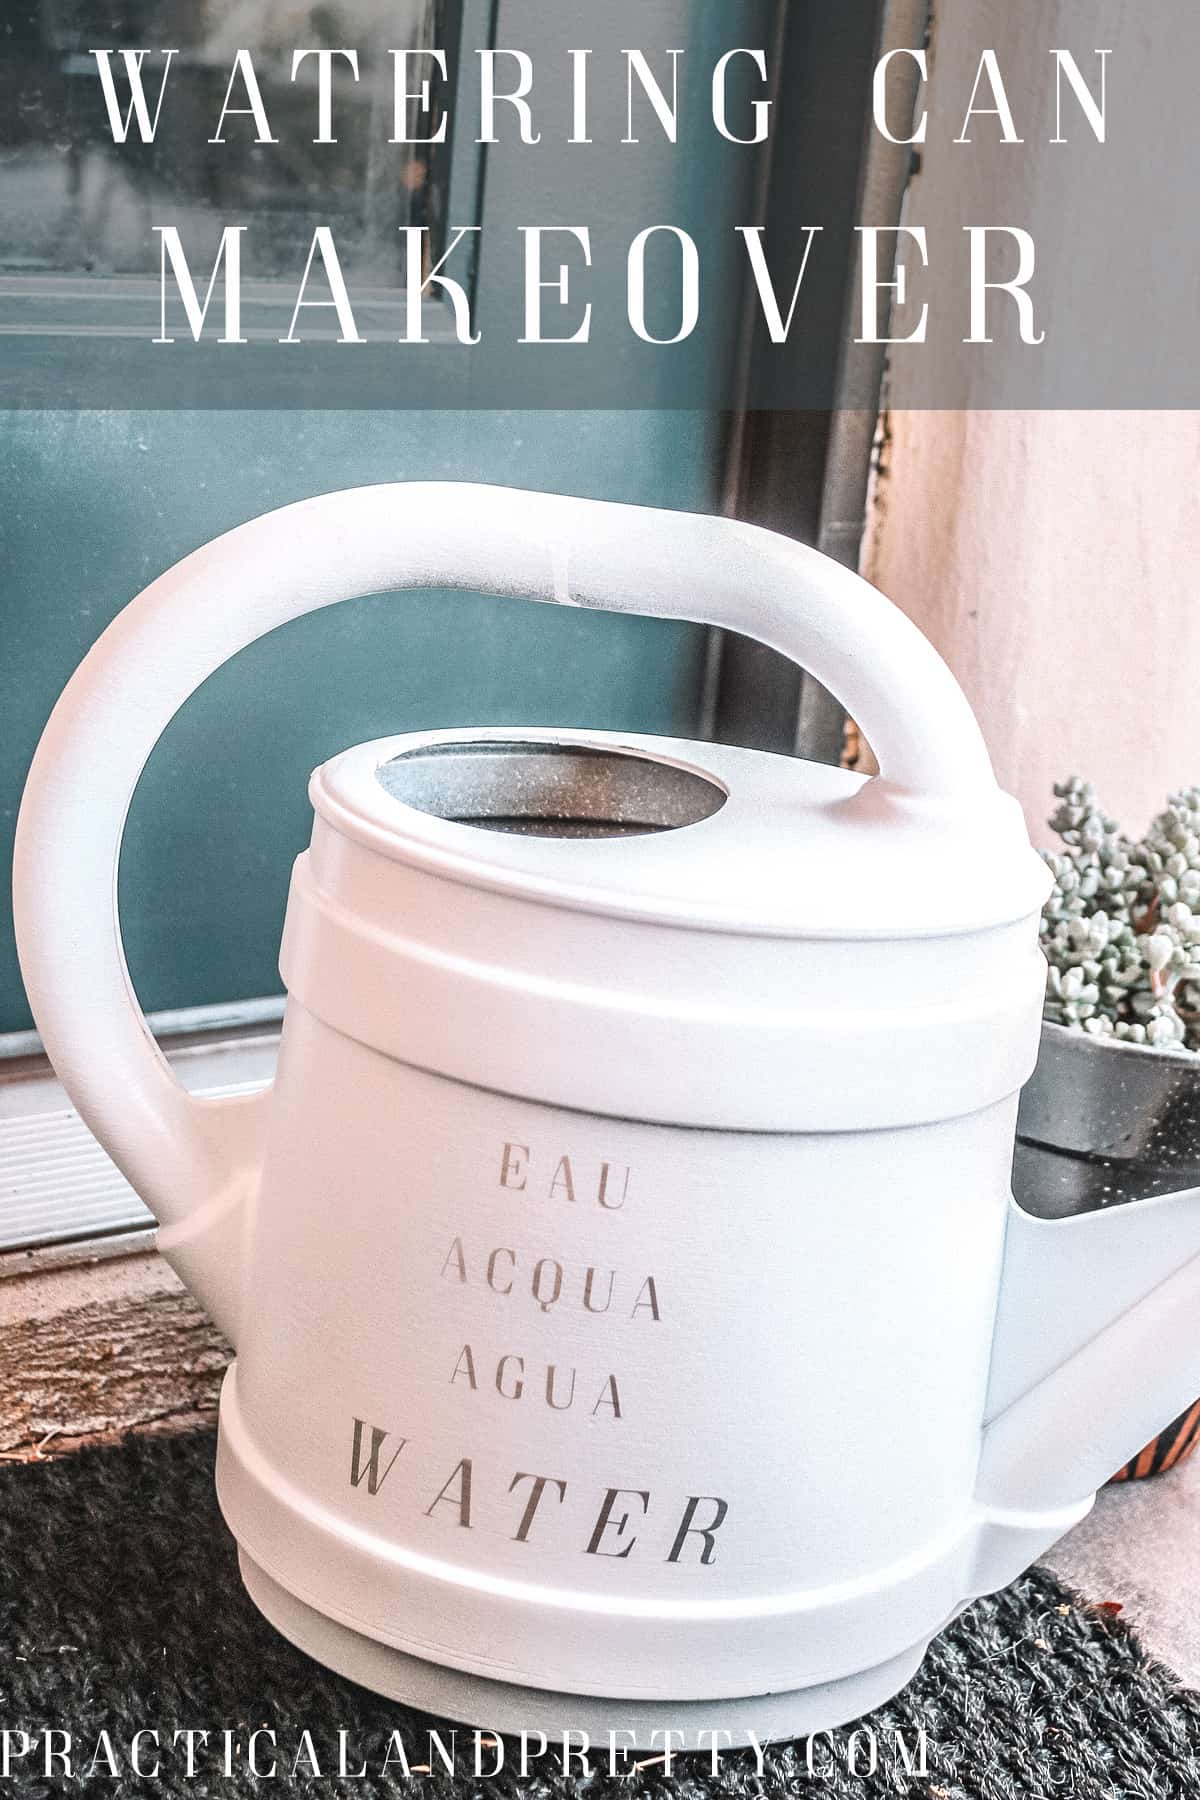 Watering cans are notoriously ugly so I decided to give this one a little makeover using some spray paint and my Cricut!